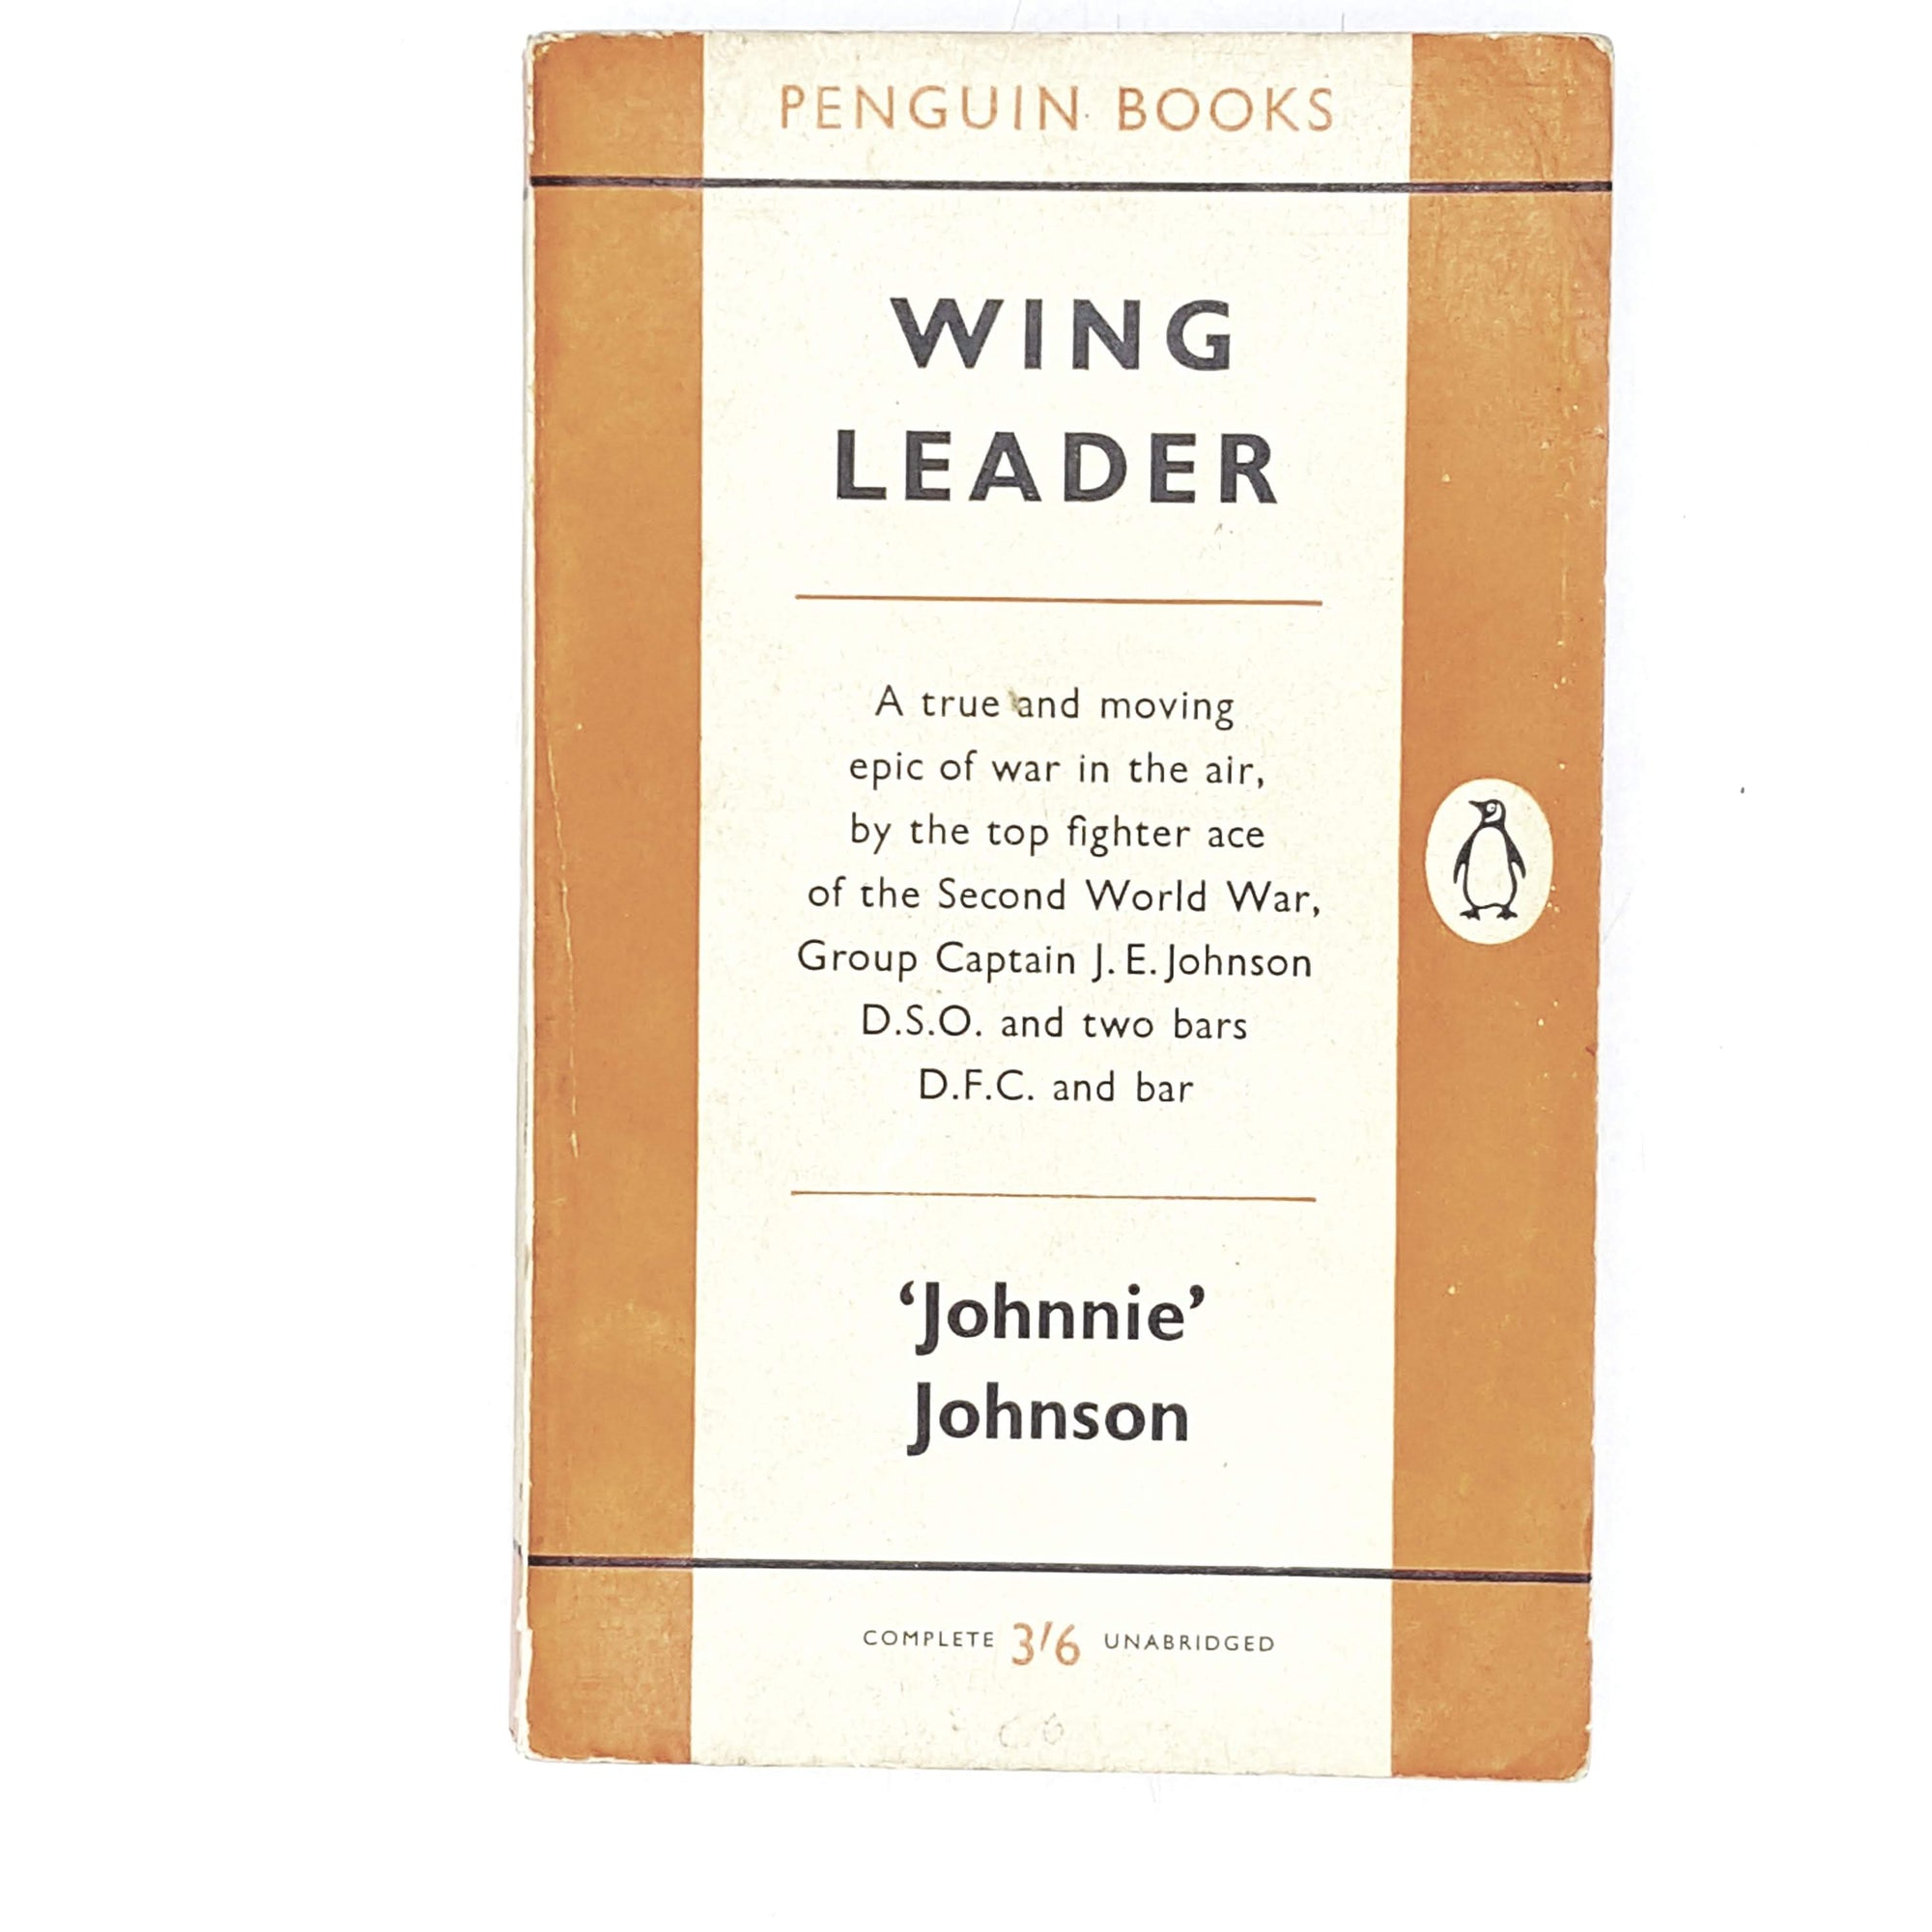 Vintage Penguin Wing Leader by Johnnie Johnson 1959